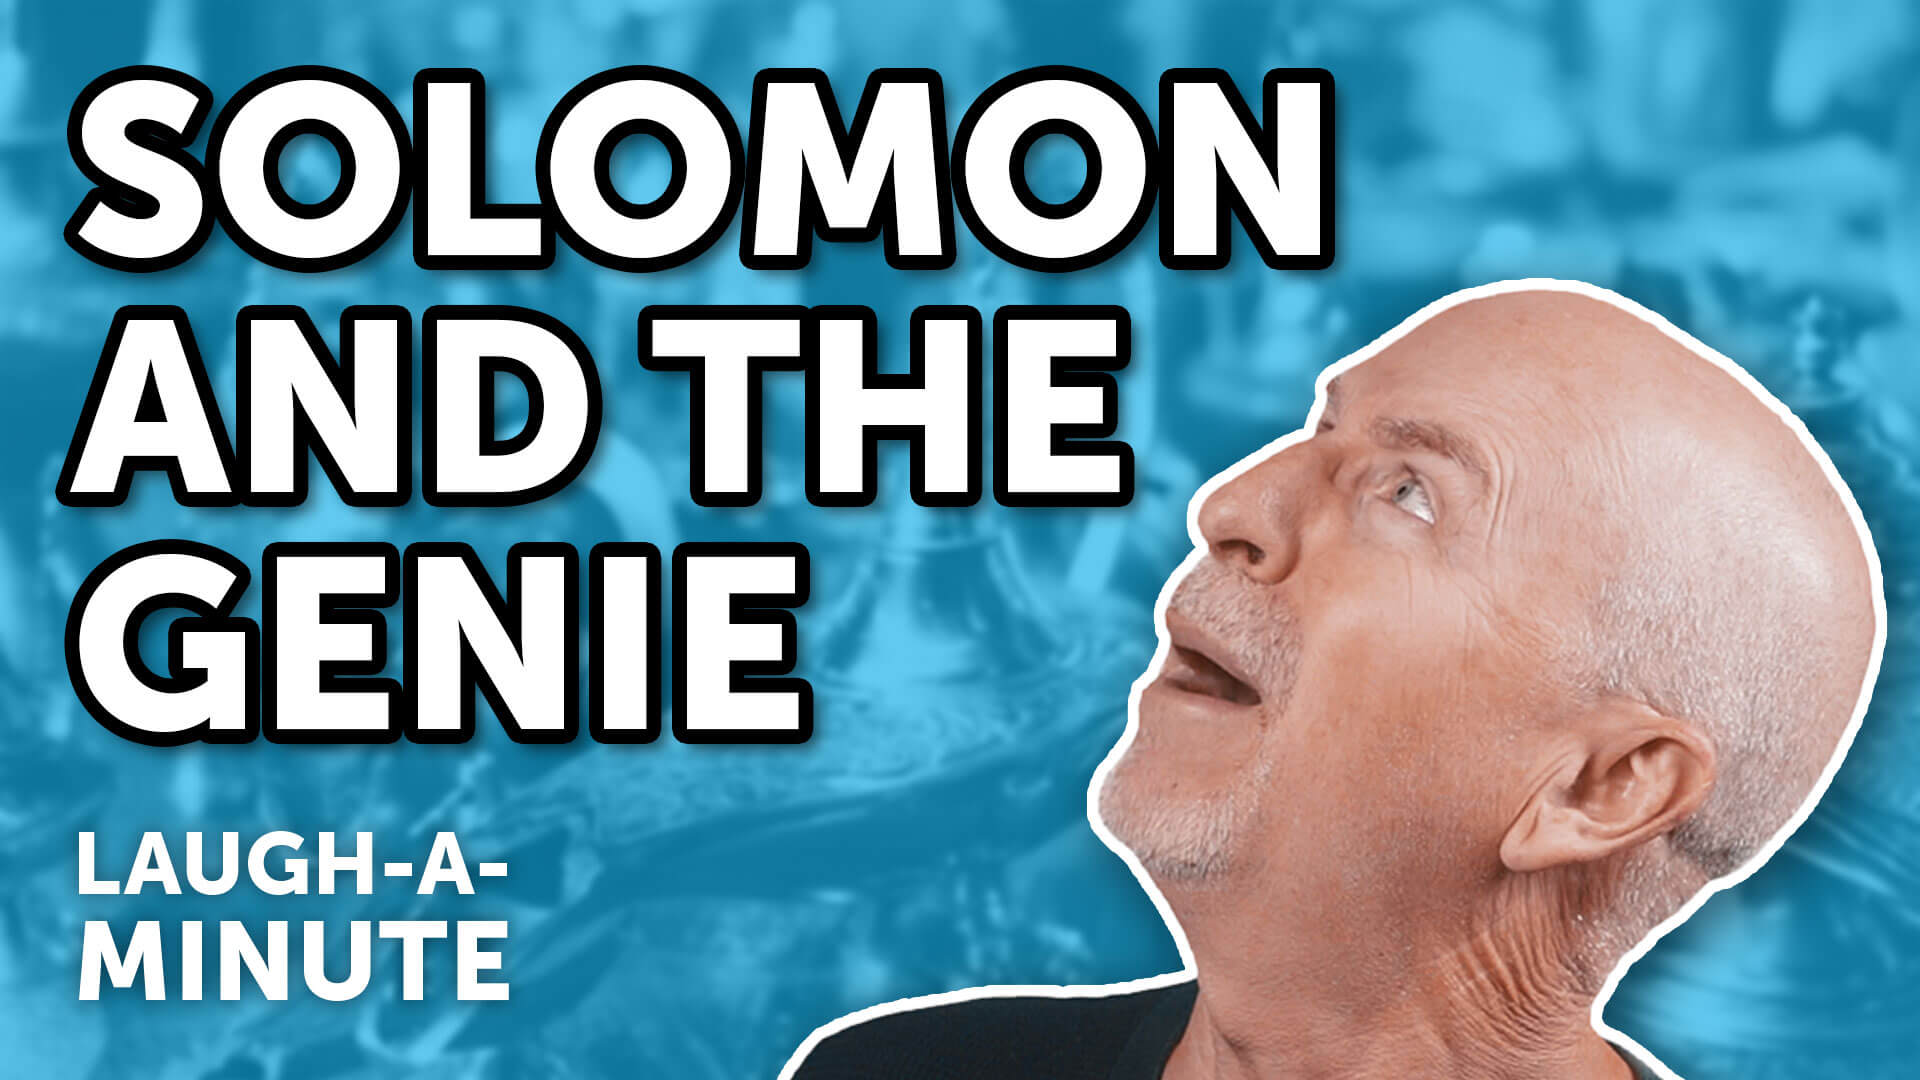 Solomon and the Genie - Laugh-A-Minute with Phil Callaway | Laugh Again TV